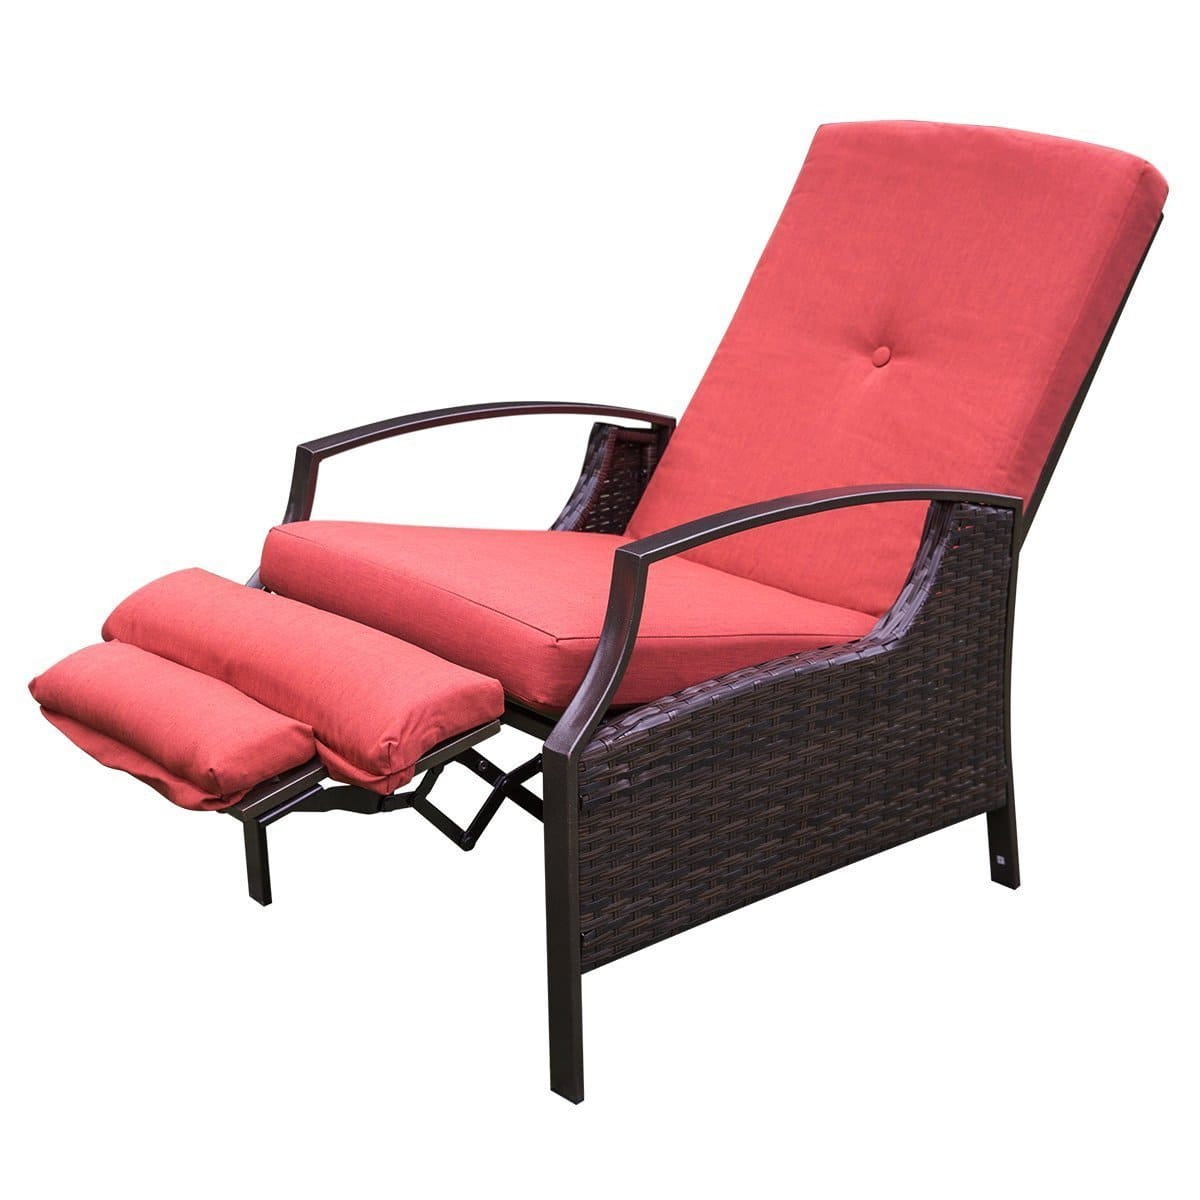 HollyHOME Patio Wicker Adjustable Recliner Chair (Free Amazon Shipping) $110  sc 1 st  Slickdeals & HollyHOME Patio Wicker Adjustable Recliner Chair (Free Amazon ...